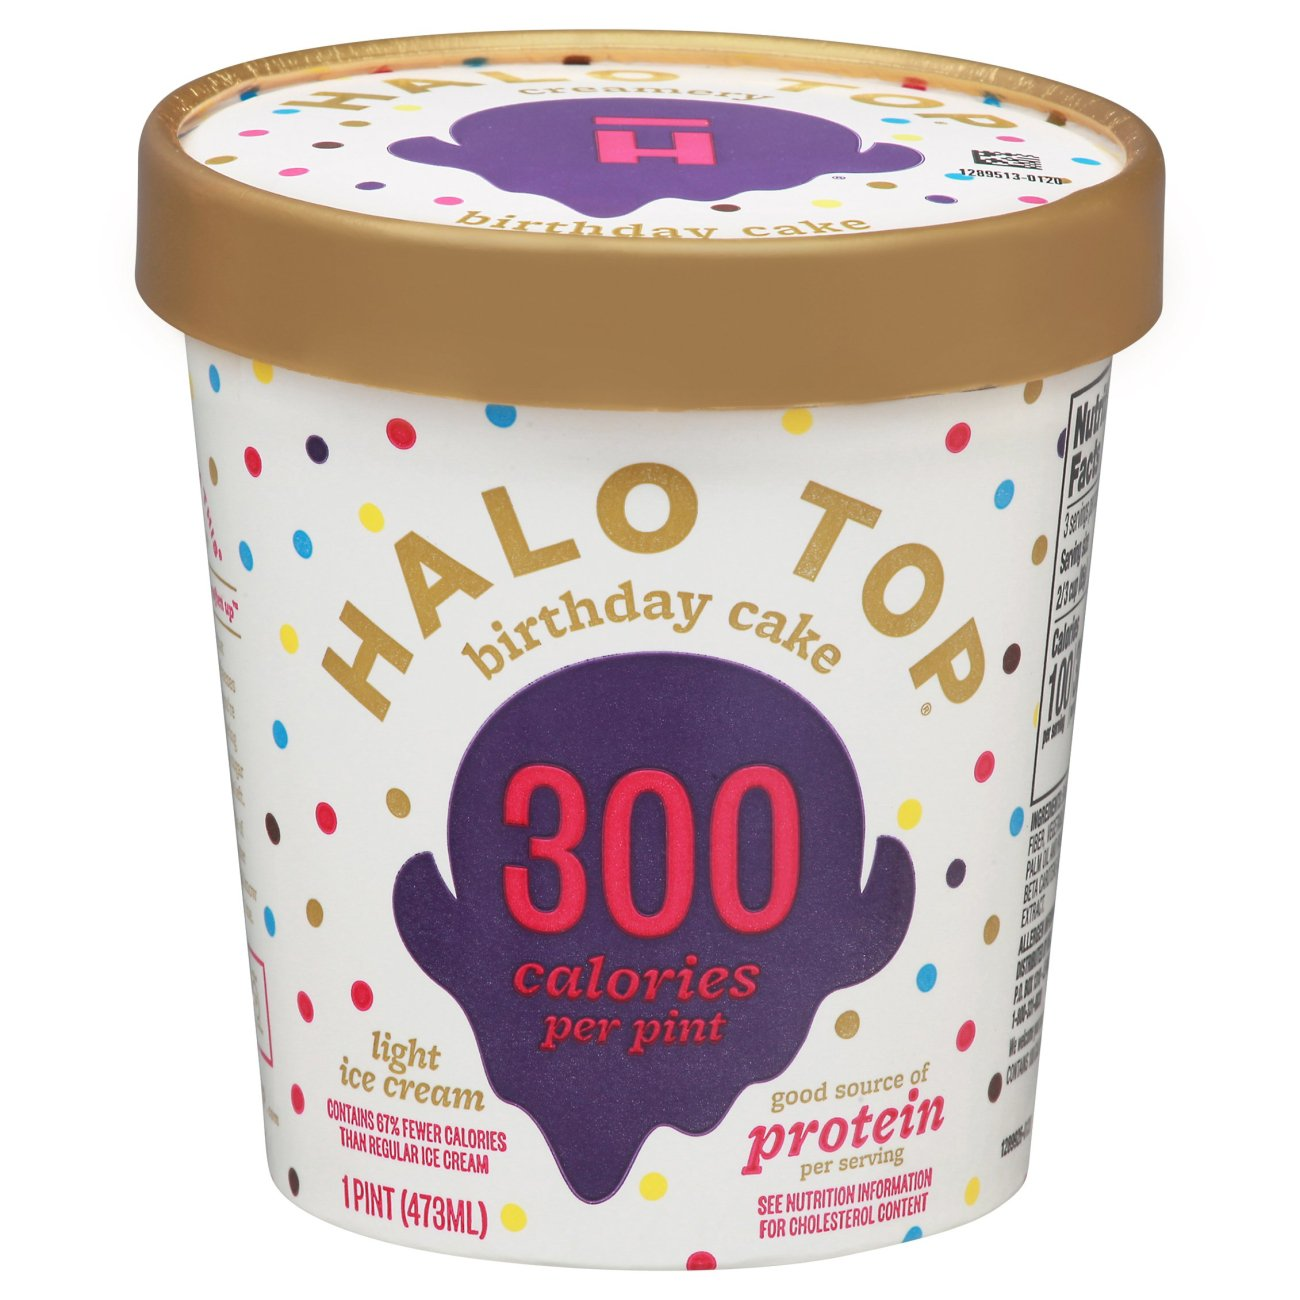 Halo Top Light Ice Cream Birthday Cake Shop Tubs at HEB